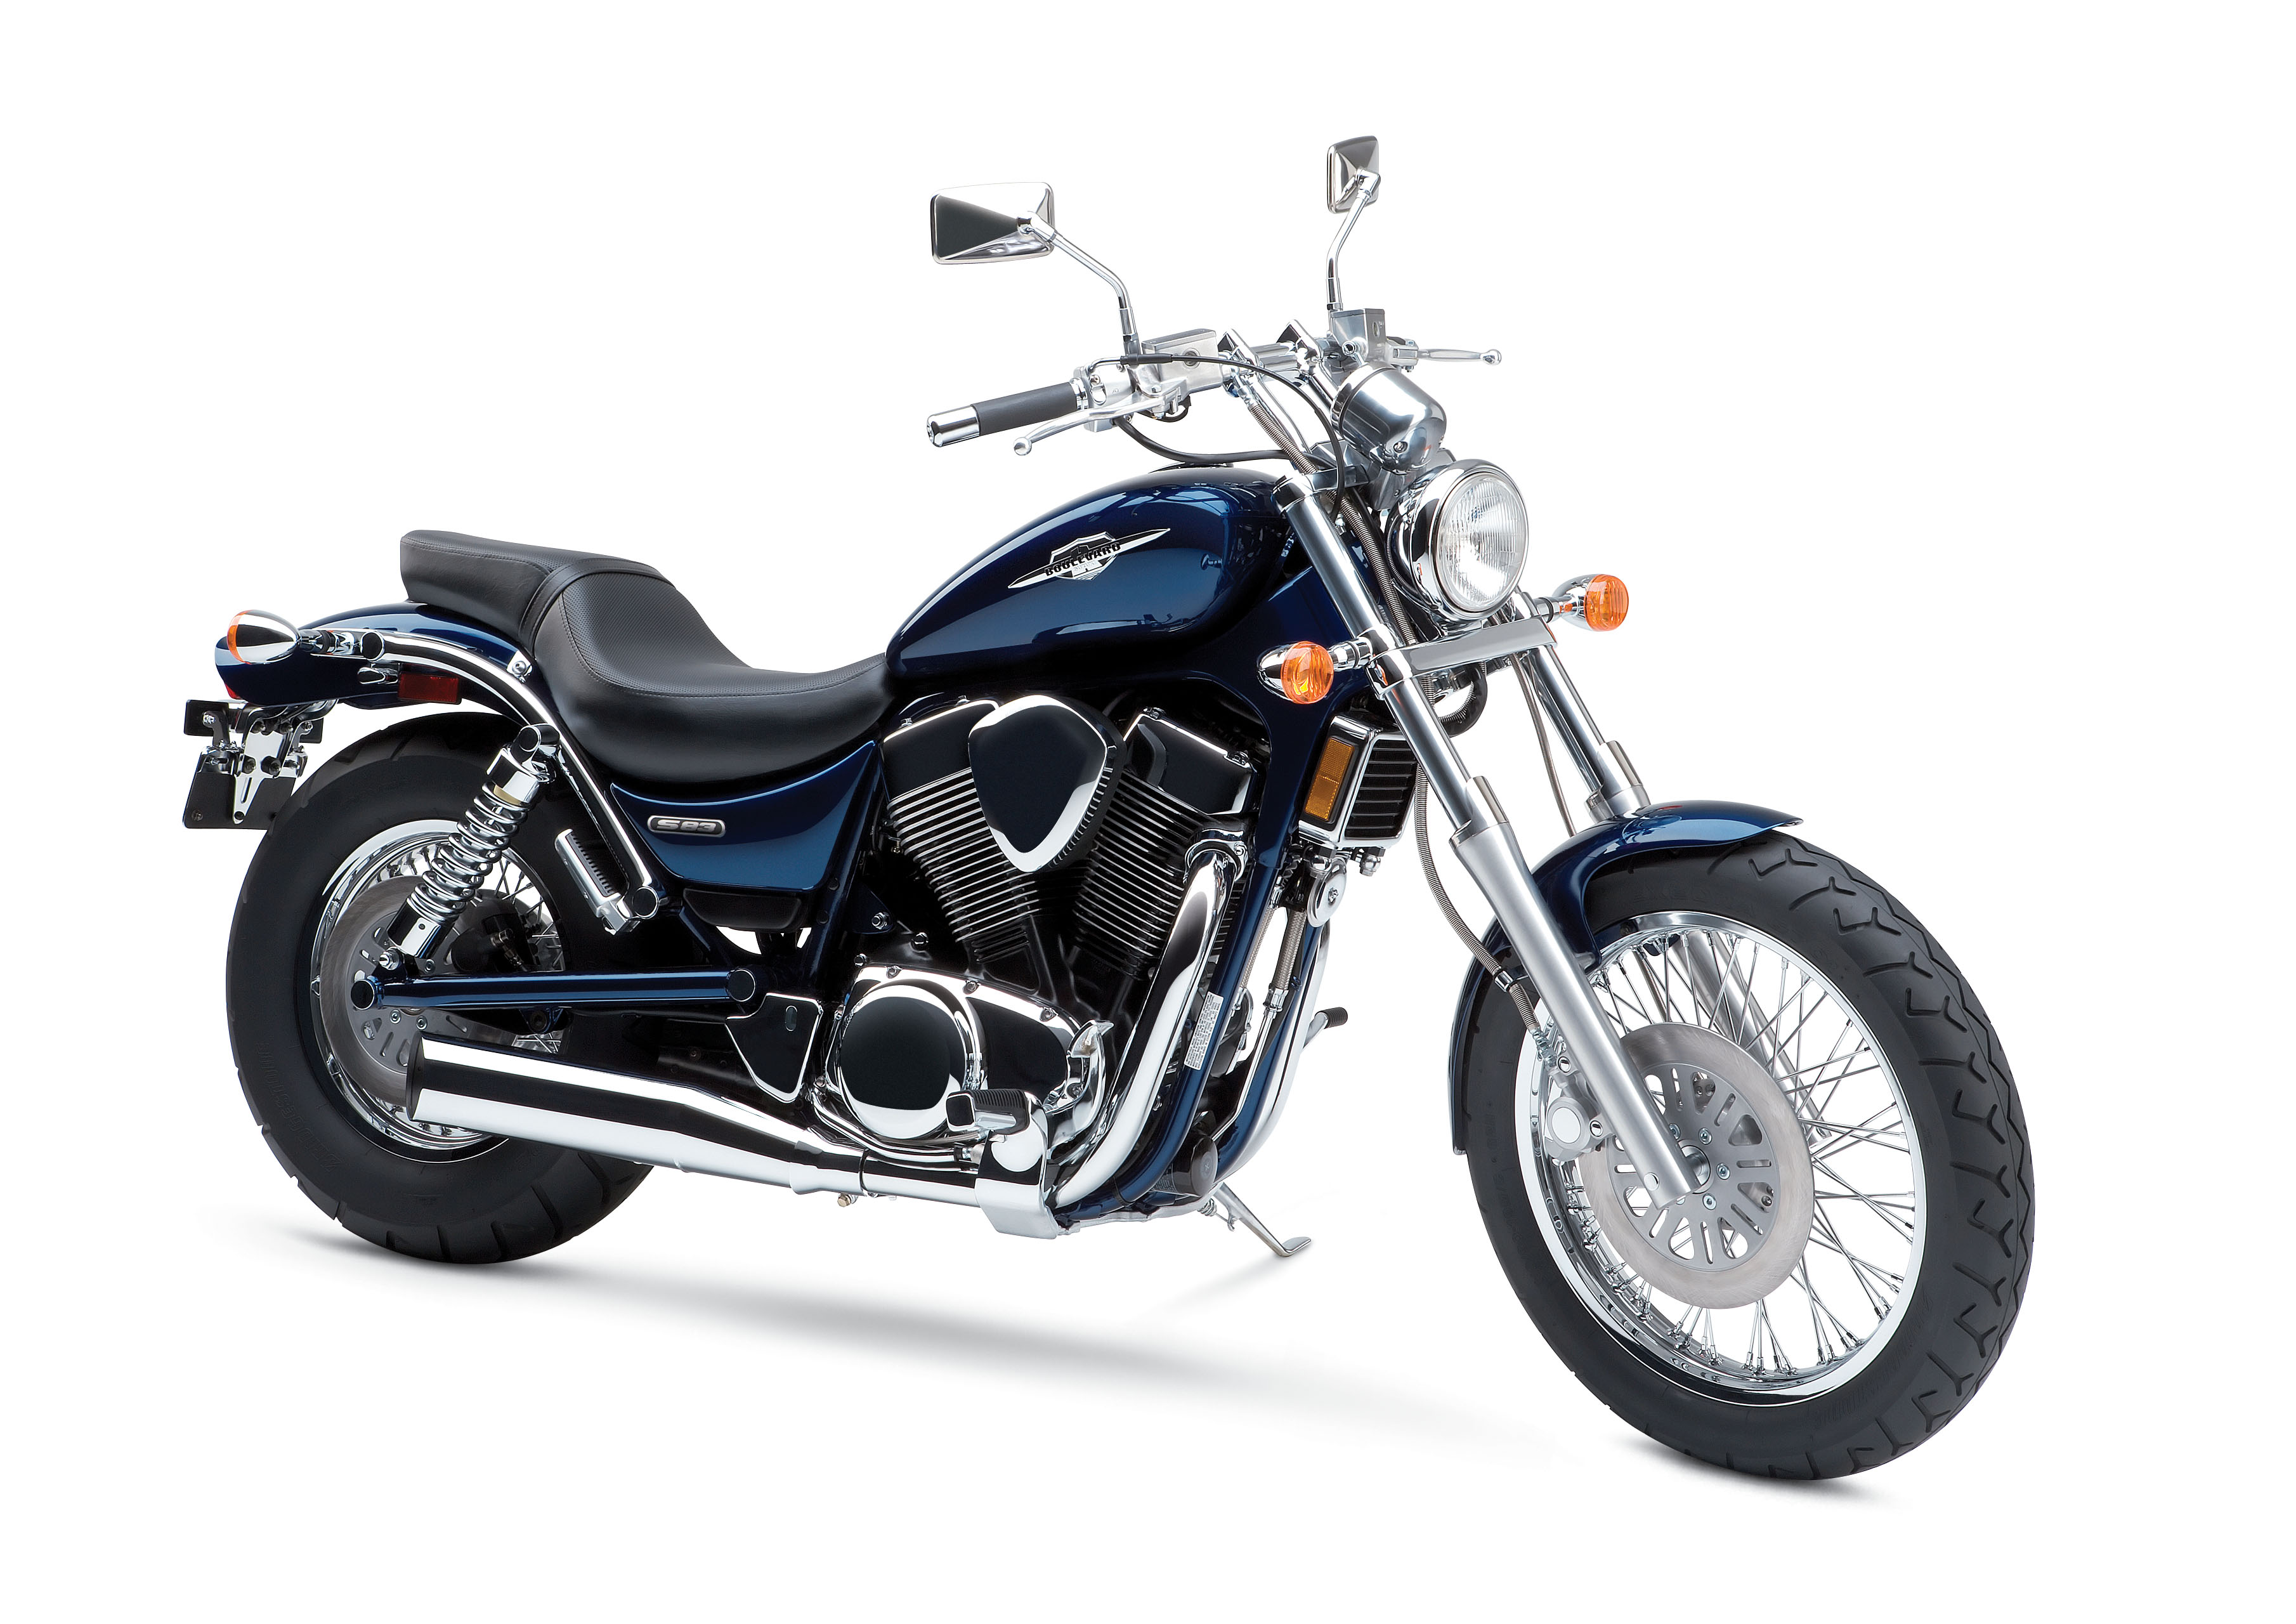 Suzuki Boulevard S on Harley Davidson Twin Cooled Engine